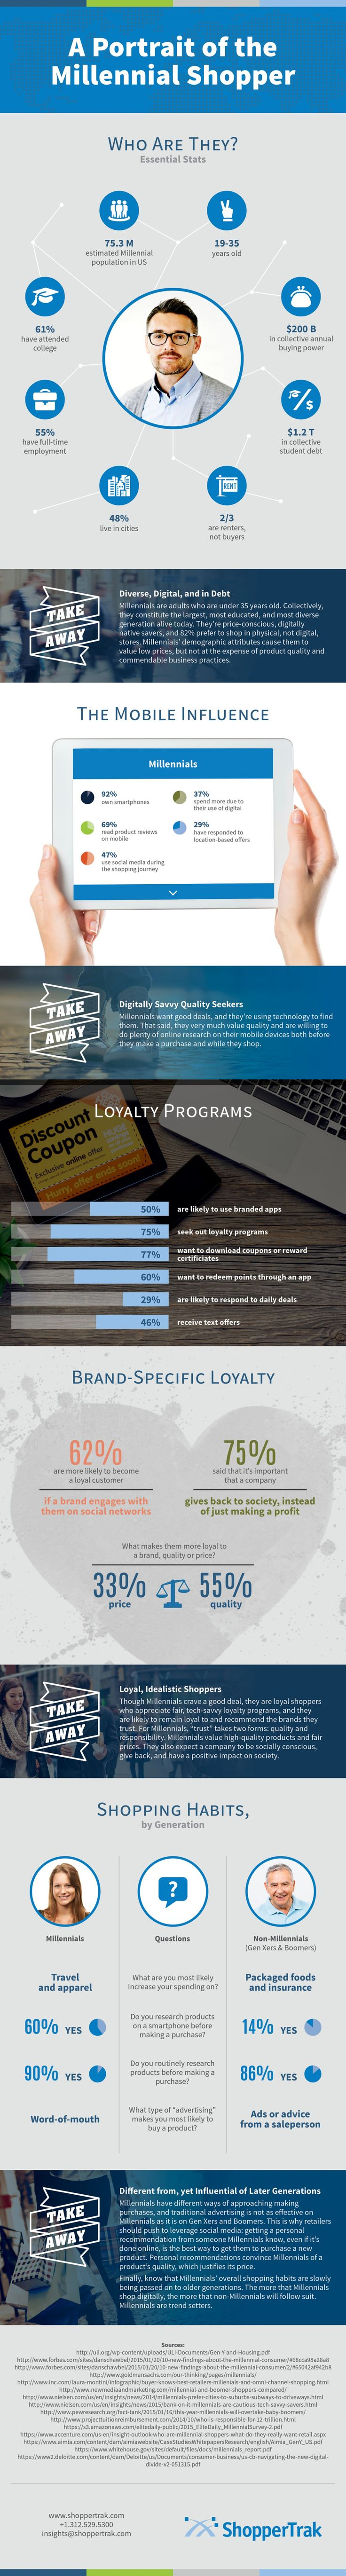 A Portrait of the #Millennial #Shopper #Infographic. It's infographics based on the facts about Millennials (people who were born approximately between the early 1980s and the early 2000s). The main goal of research was to reveal what characteristics they have as shoppers. What behavioral patterns are there? What difference is there between Millennial shopper and a shopper of elder age group? This infographics contains the answers of these questions.